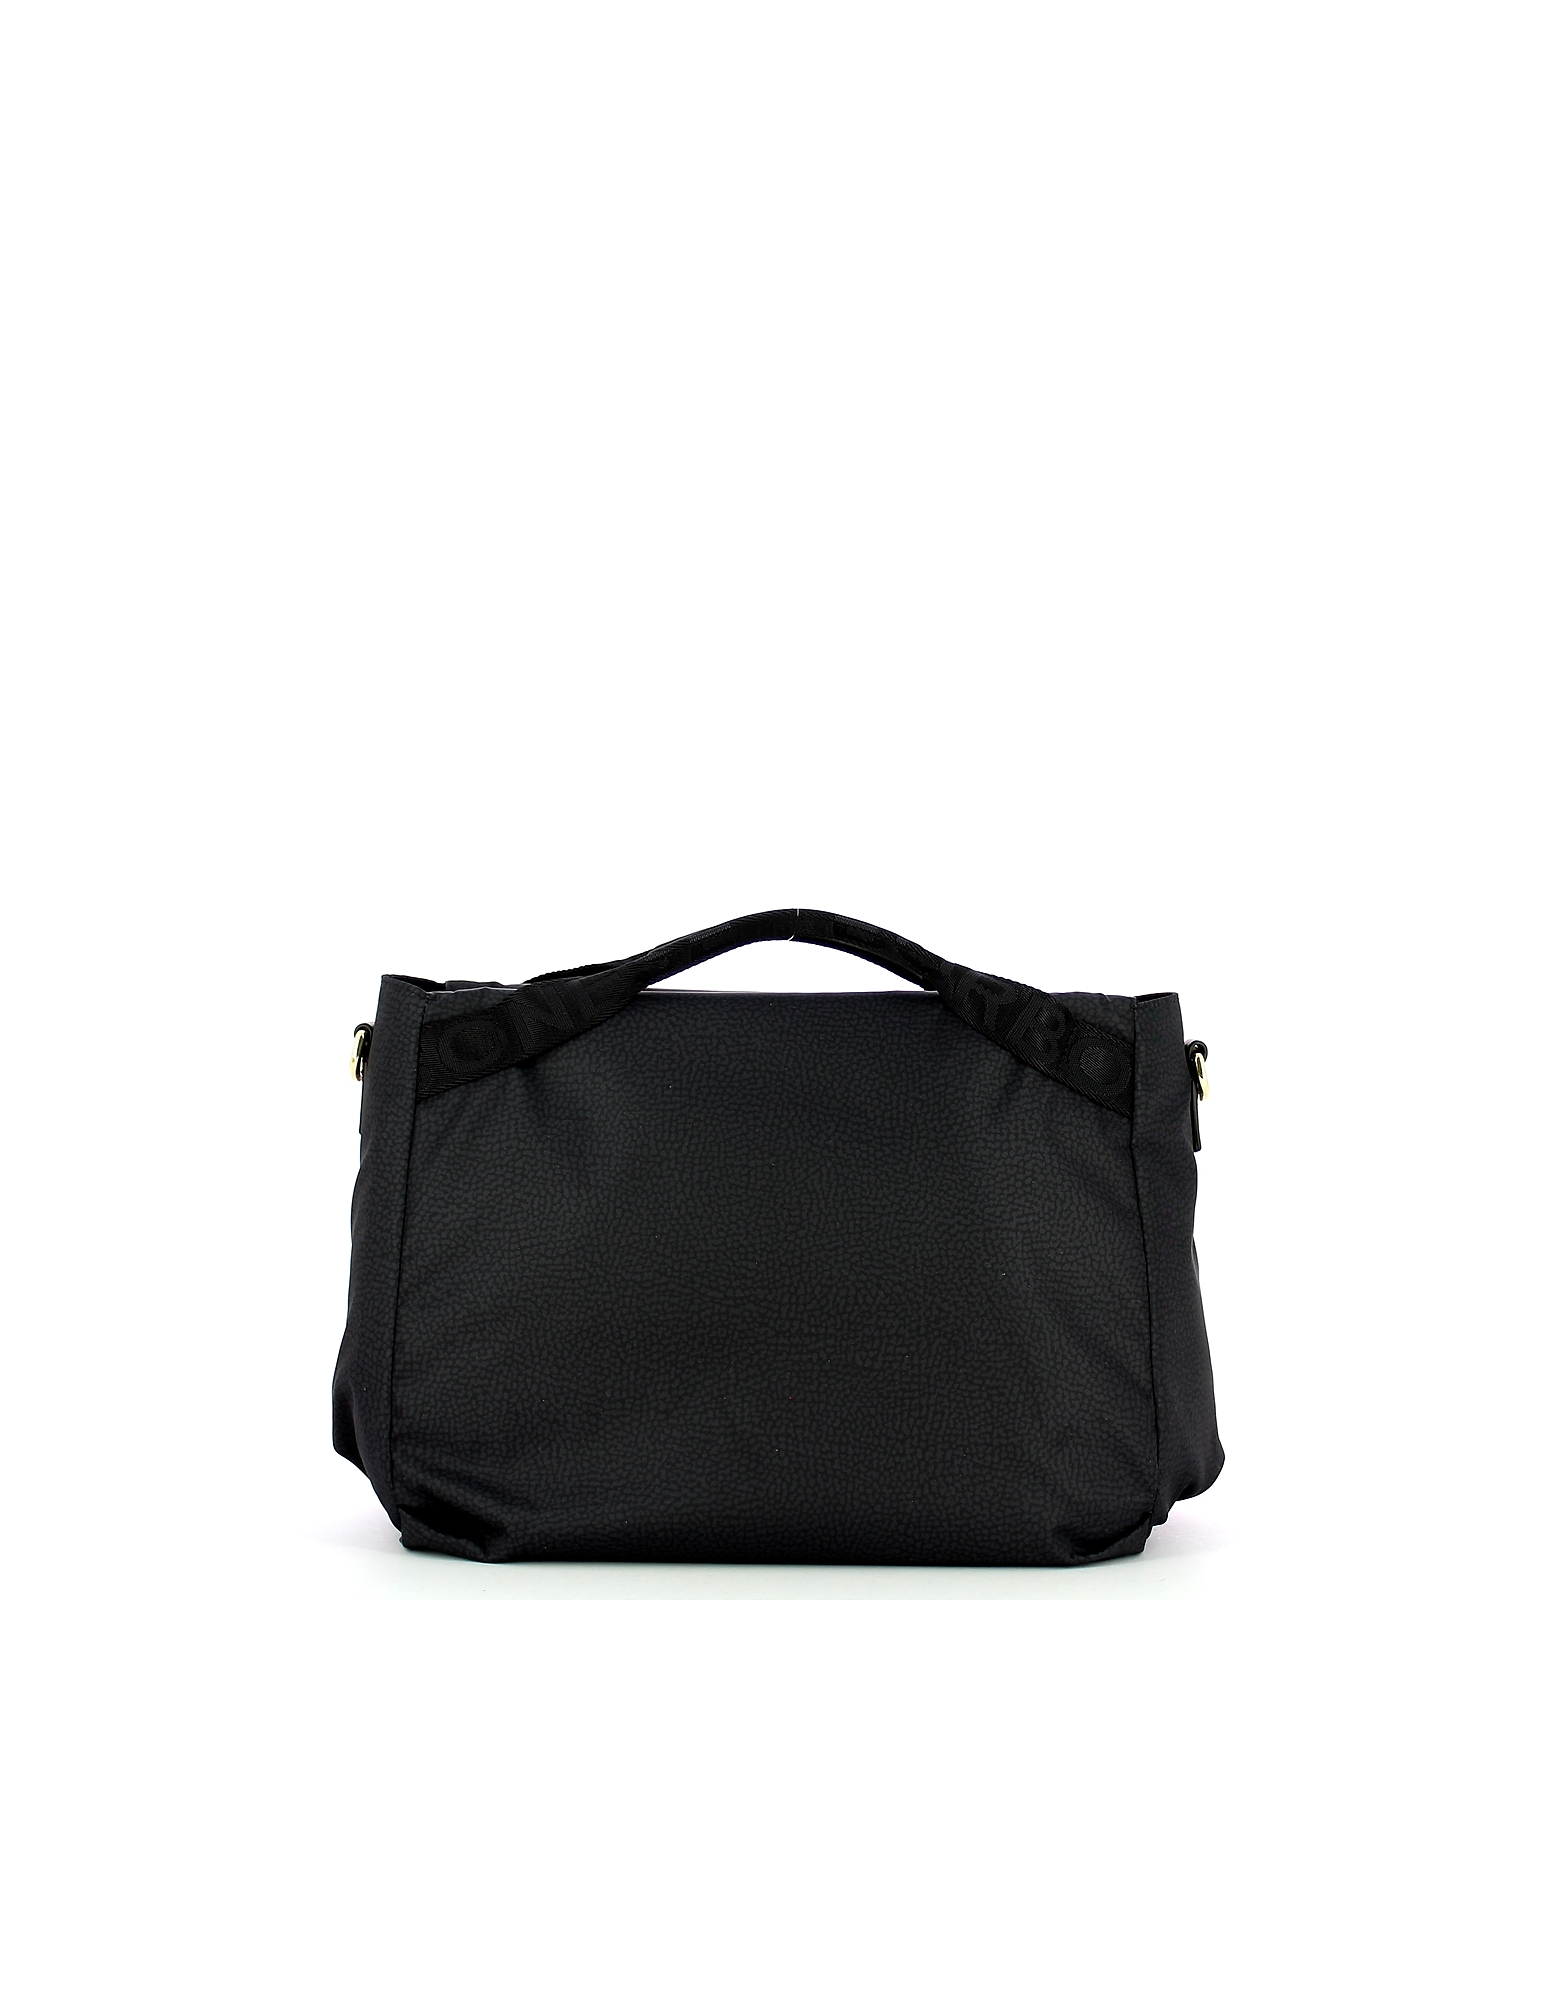 Borbonese Designer Handbags, Women's Black Bag